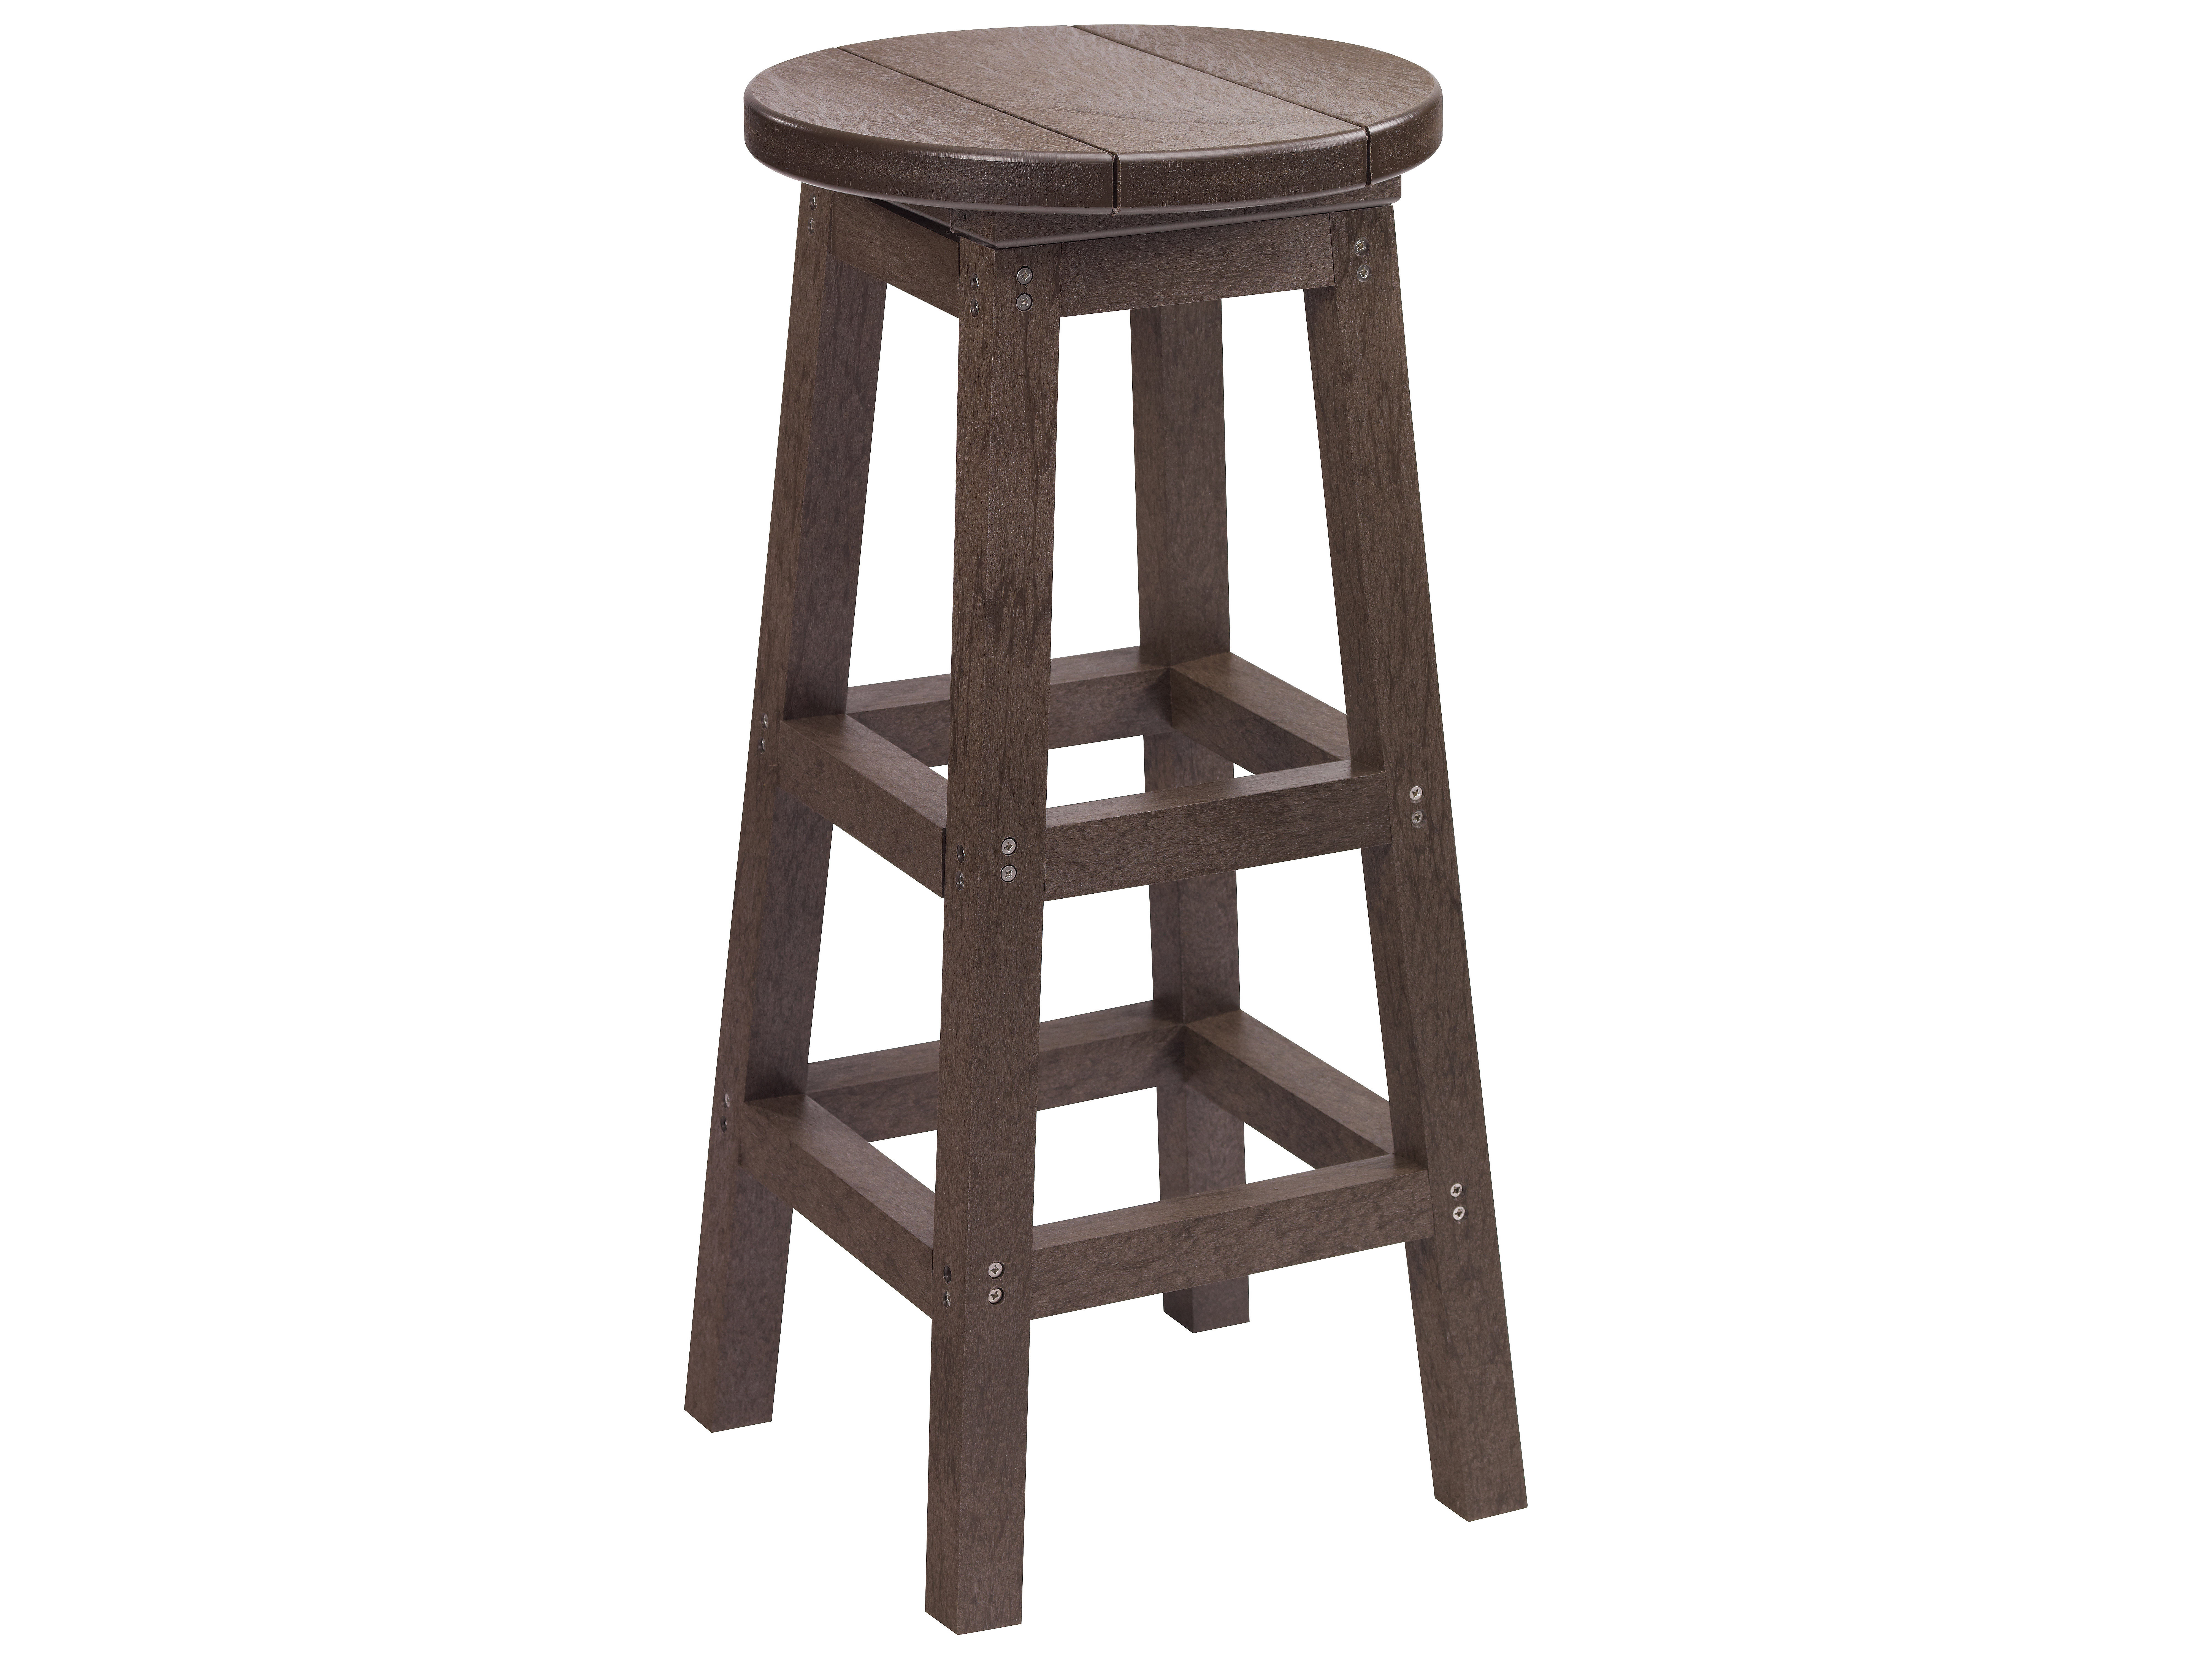 C R Plastic Generation Recycled Plastic Bar Stool C21